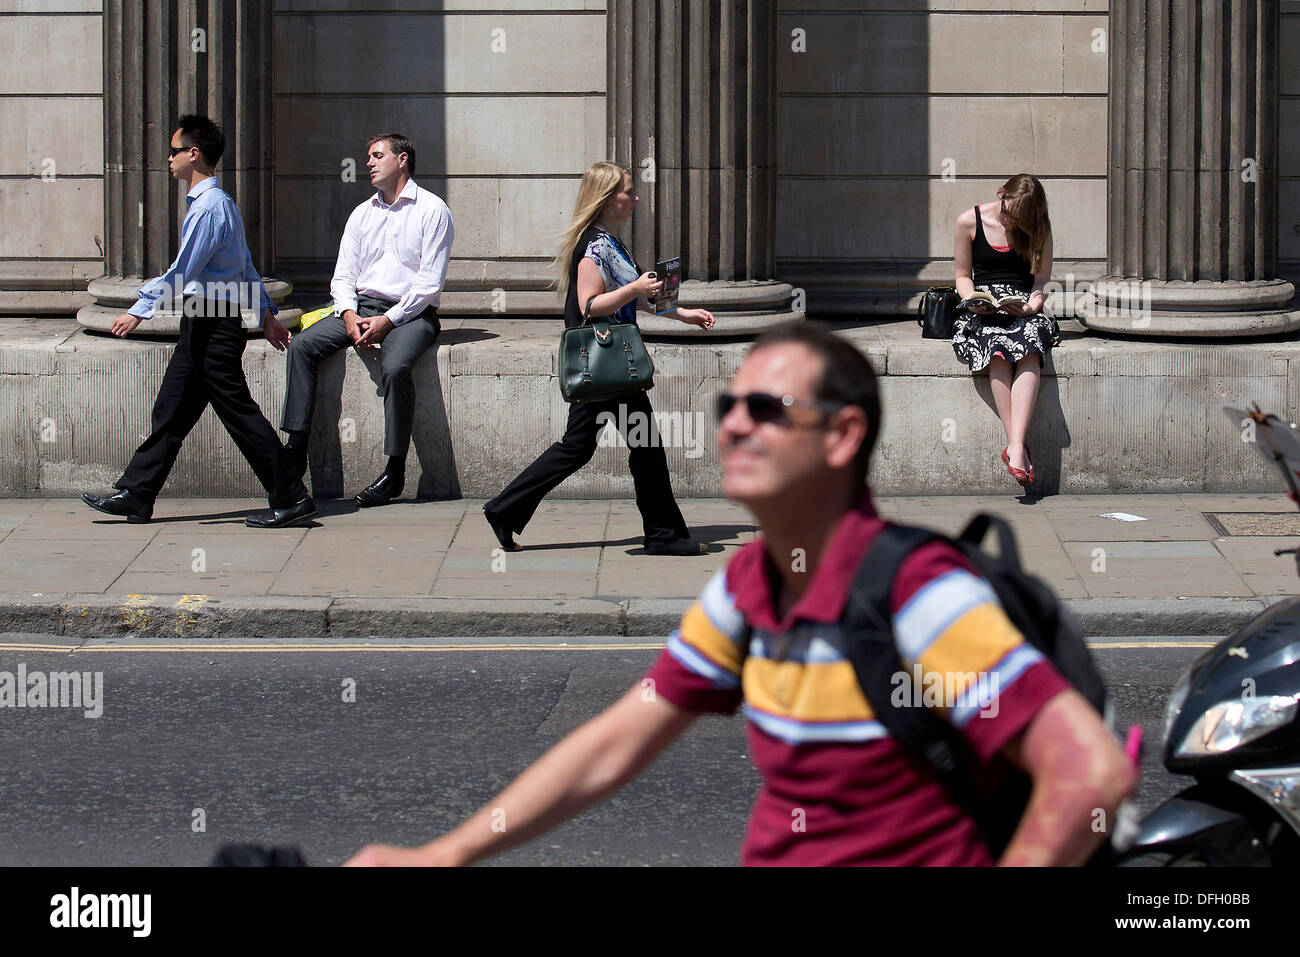 A man sleeps in the sunshine during hot weather leaning against the Bank of England in London on July 9, 2013. - Stock Image